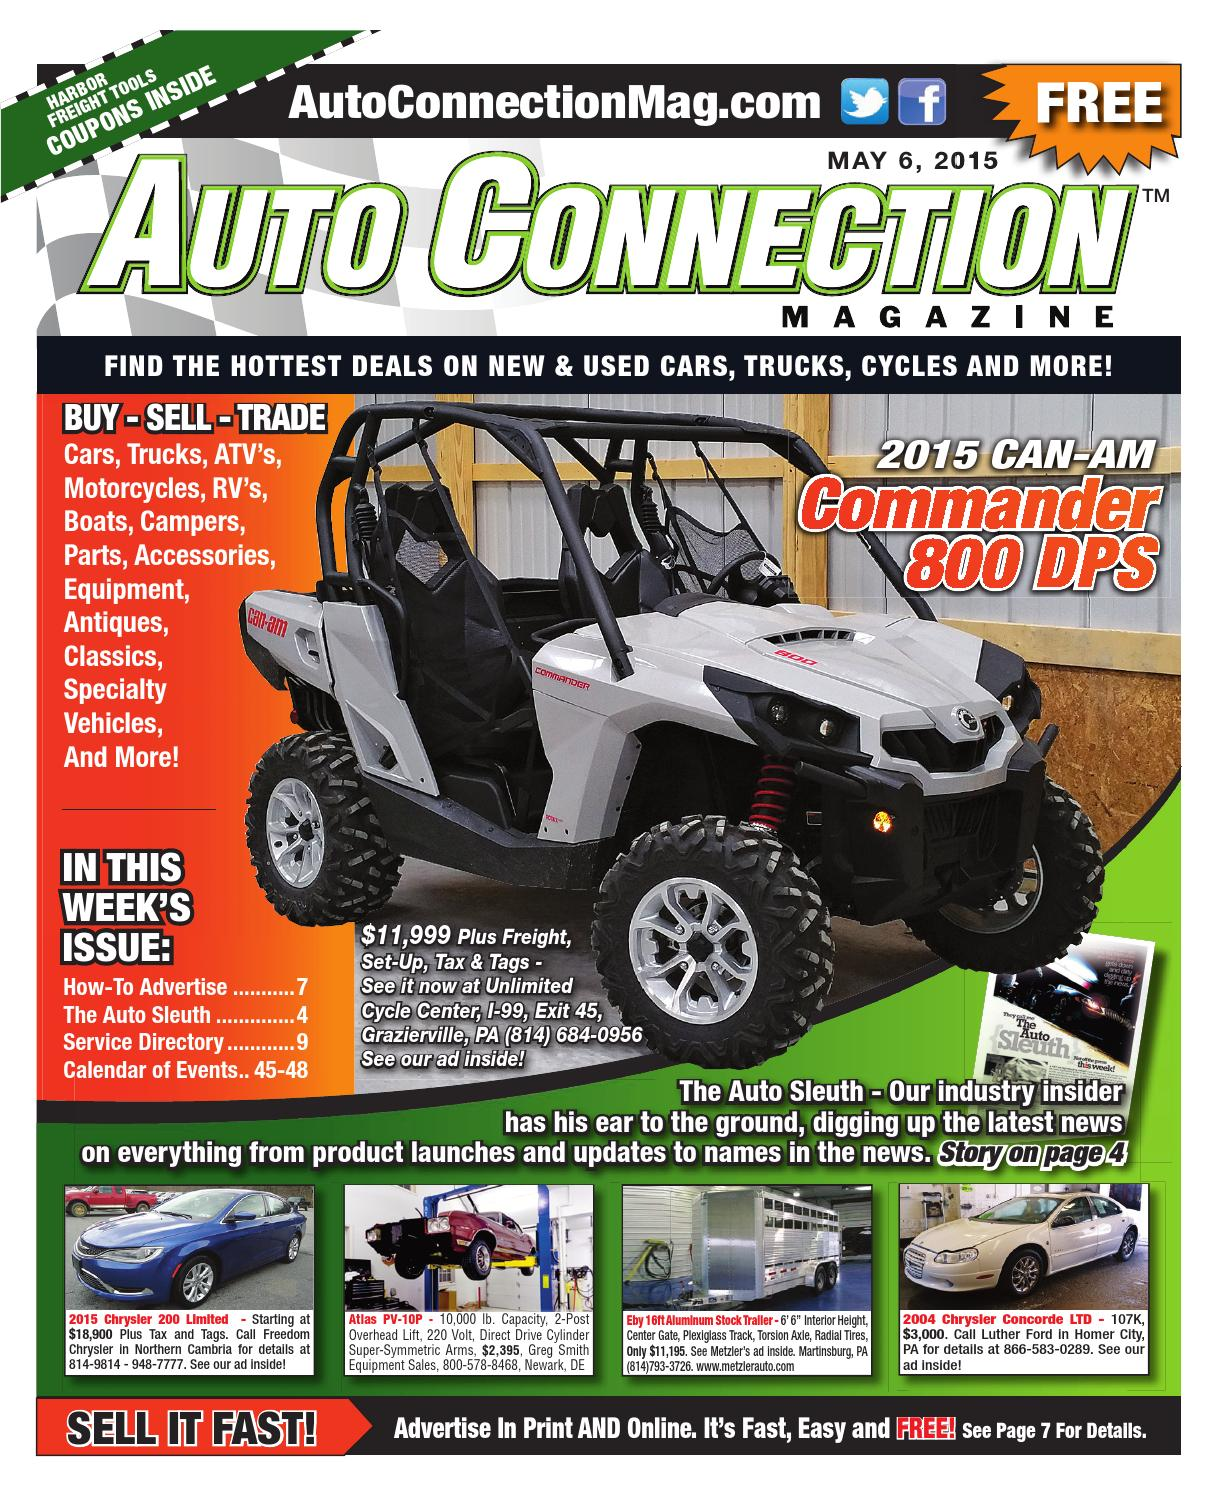 05 06 15 Auto Connection Magazine By Issuu 0 Dodge Dakota Custom Fit Vehicle Wiring Tow Ready